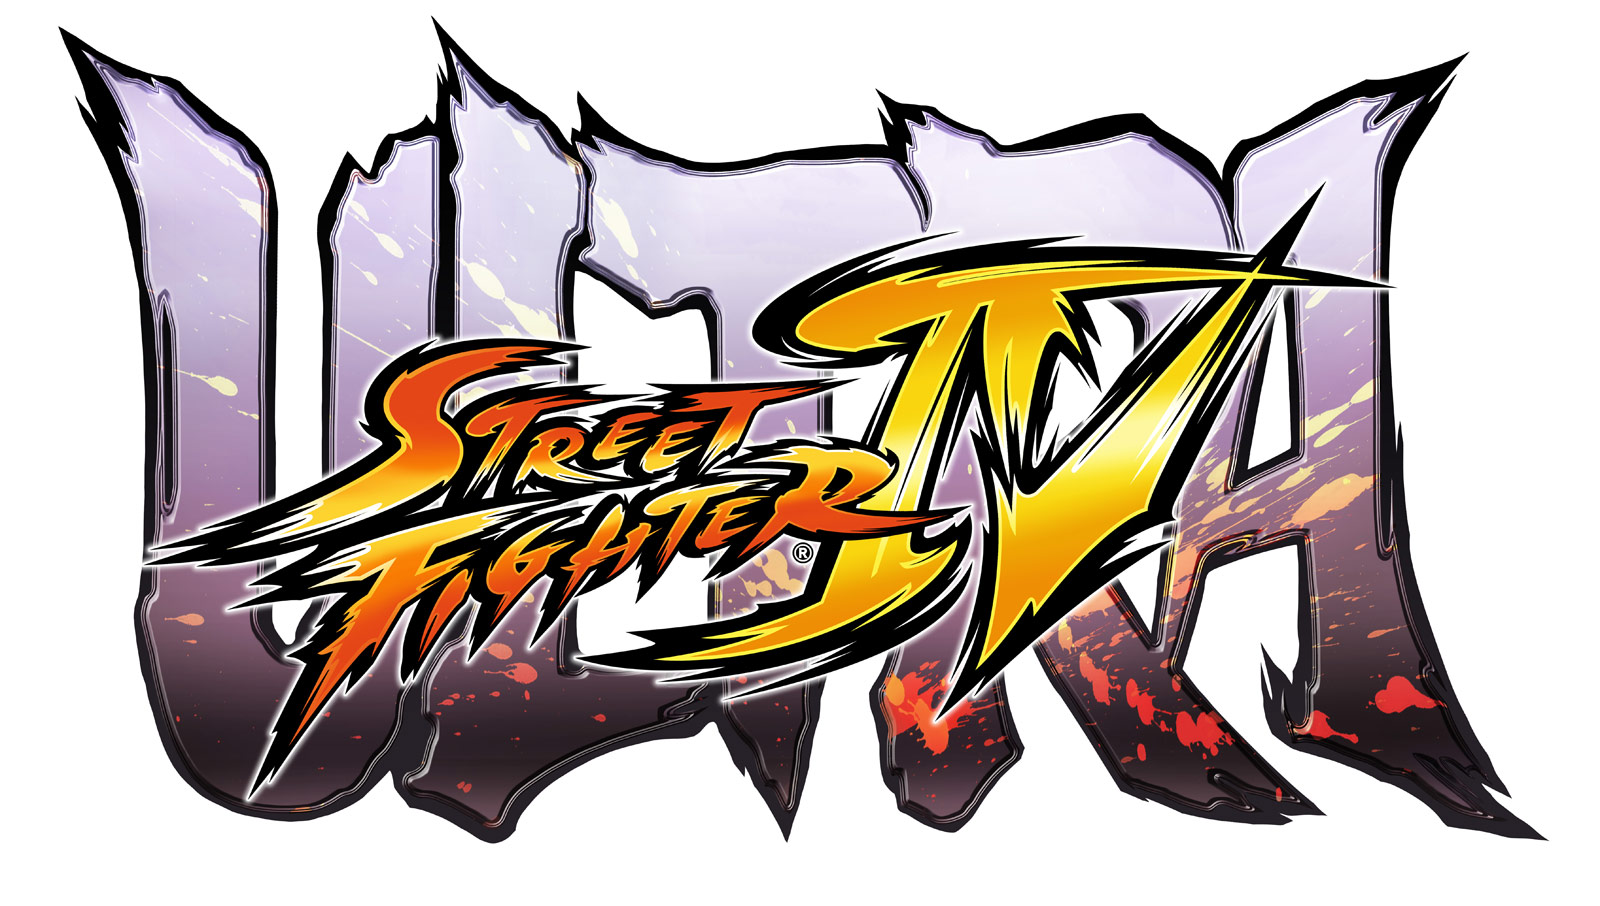 15_usf4artwork10.jpg